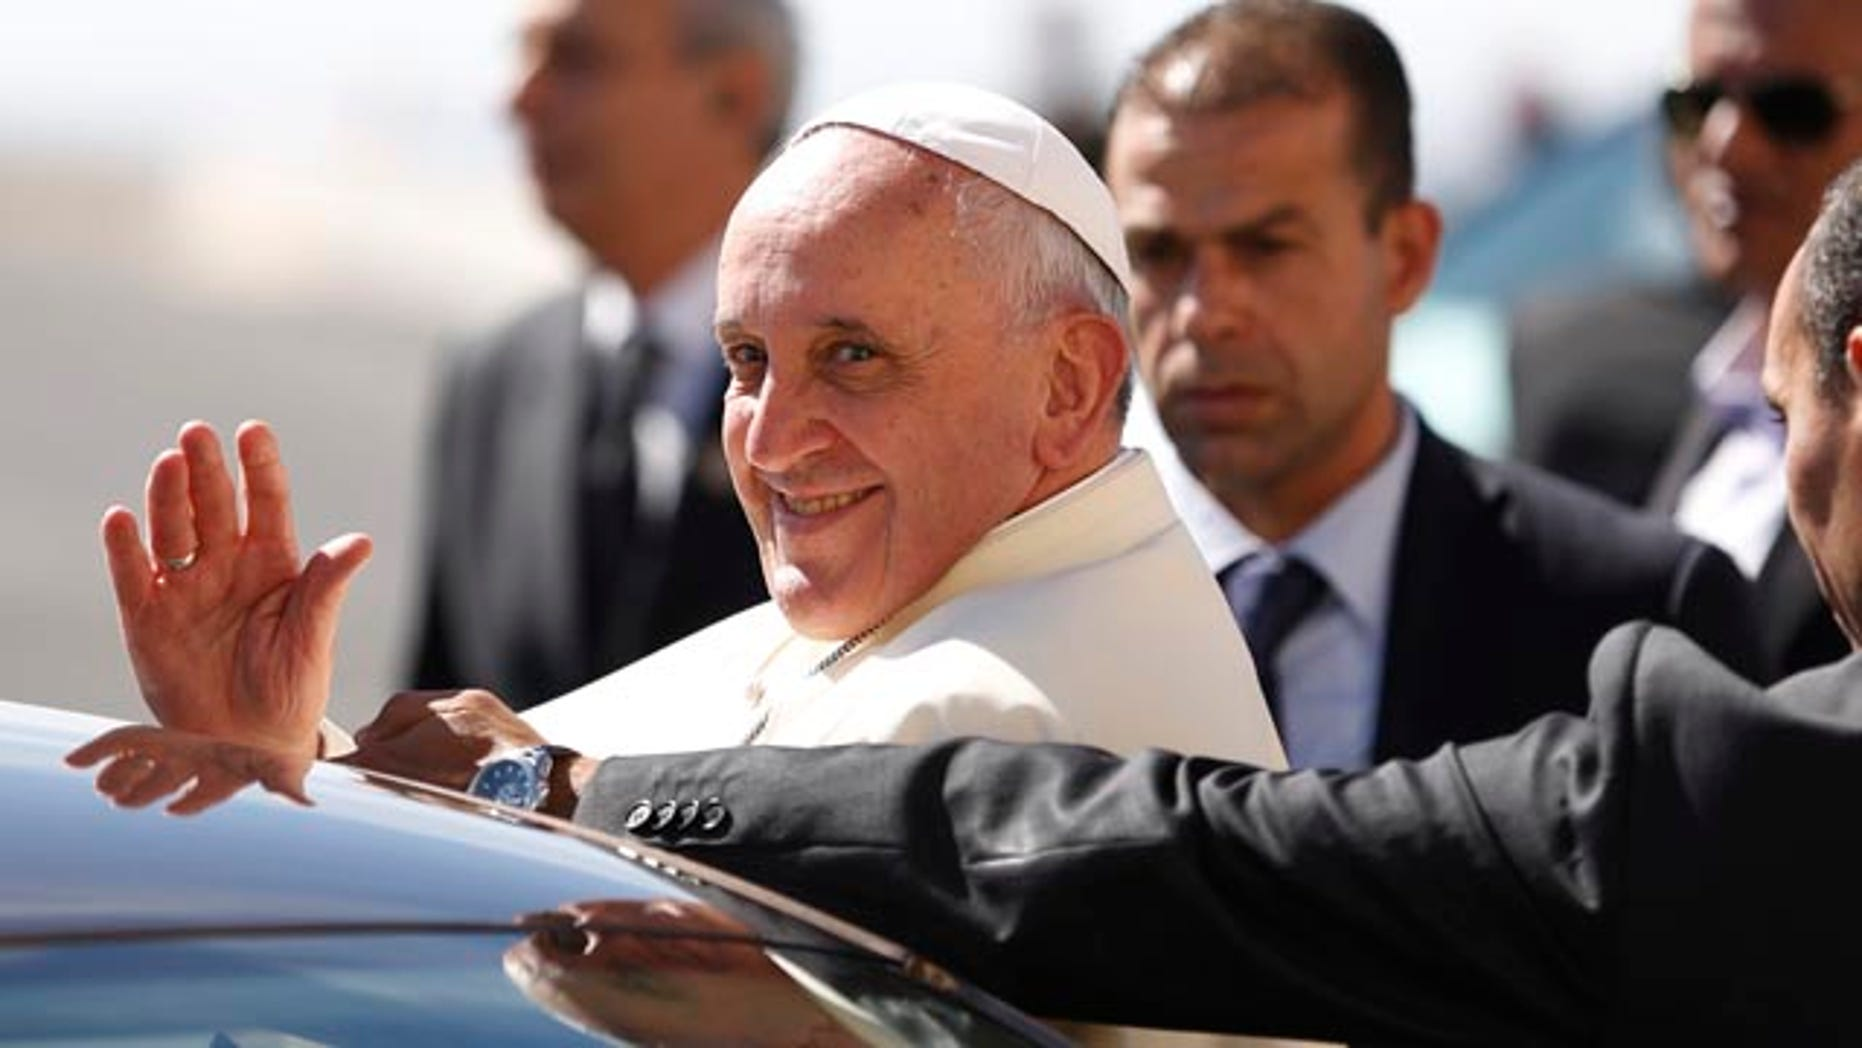 May 25, 2014: Pope Francis waves upon his arrival at the West Bank town of Bethlehem on Sunday, May 25, 2014. (AP Photo/Mohamad Torokman, Pool)